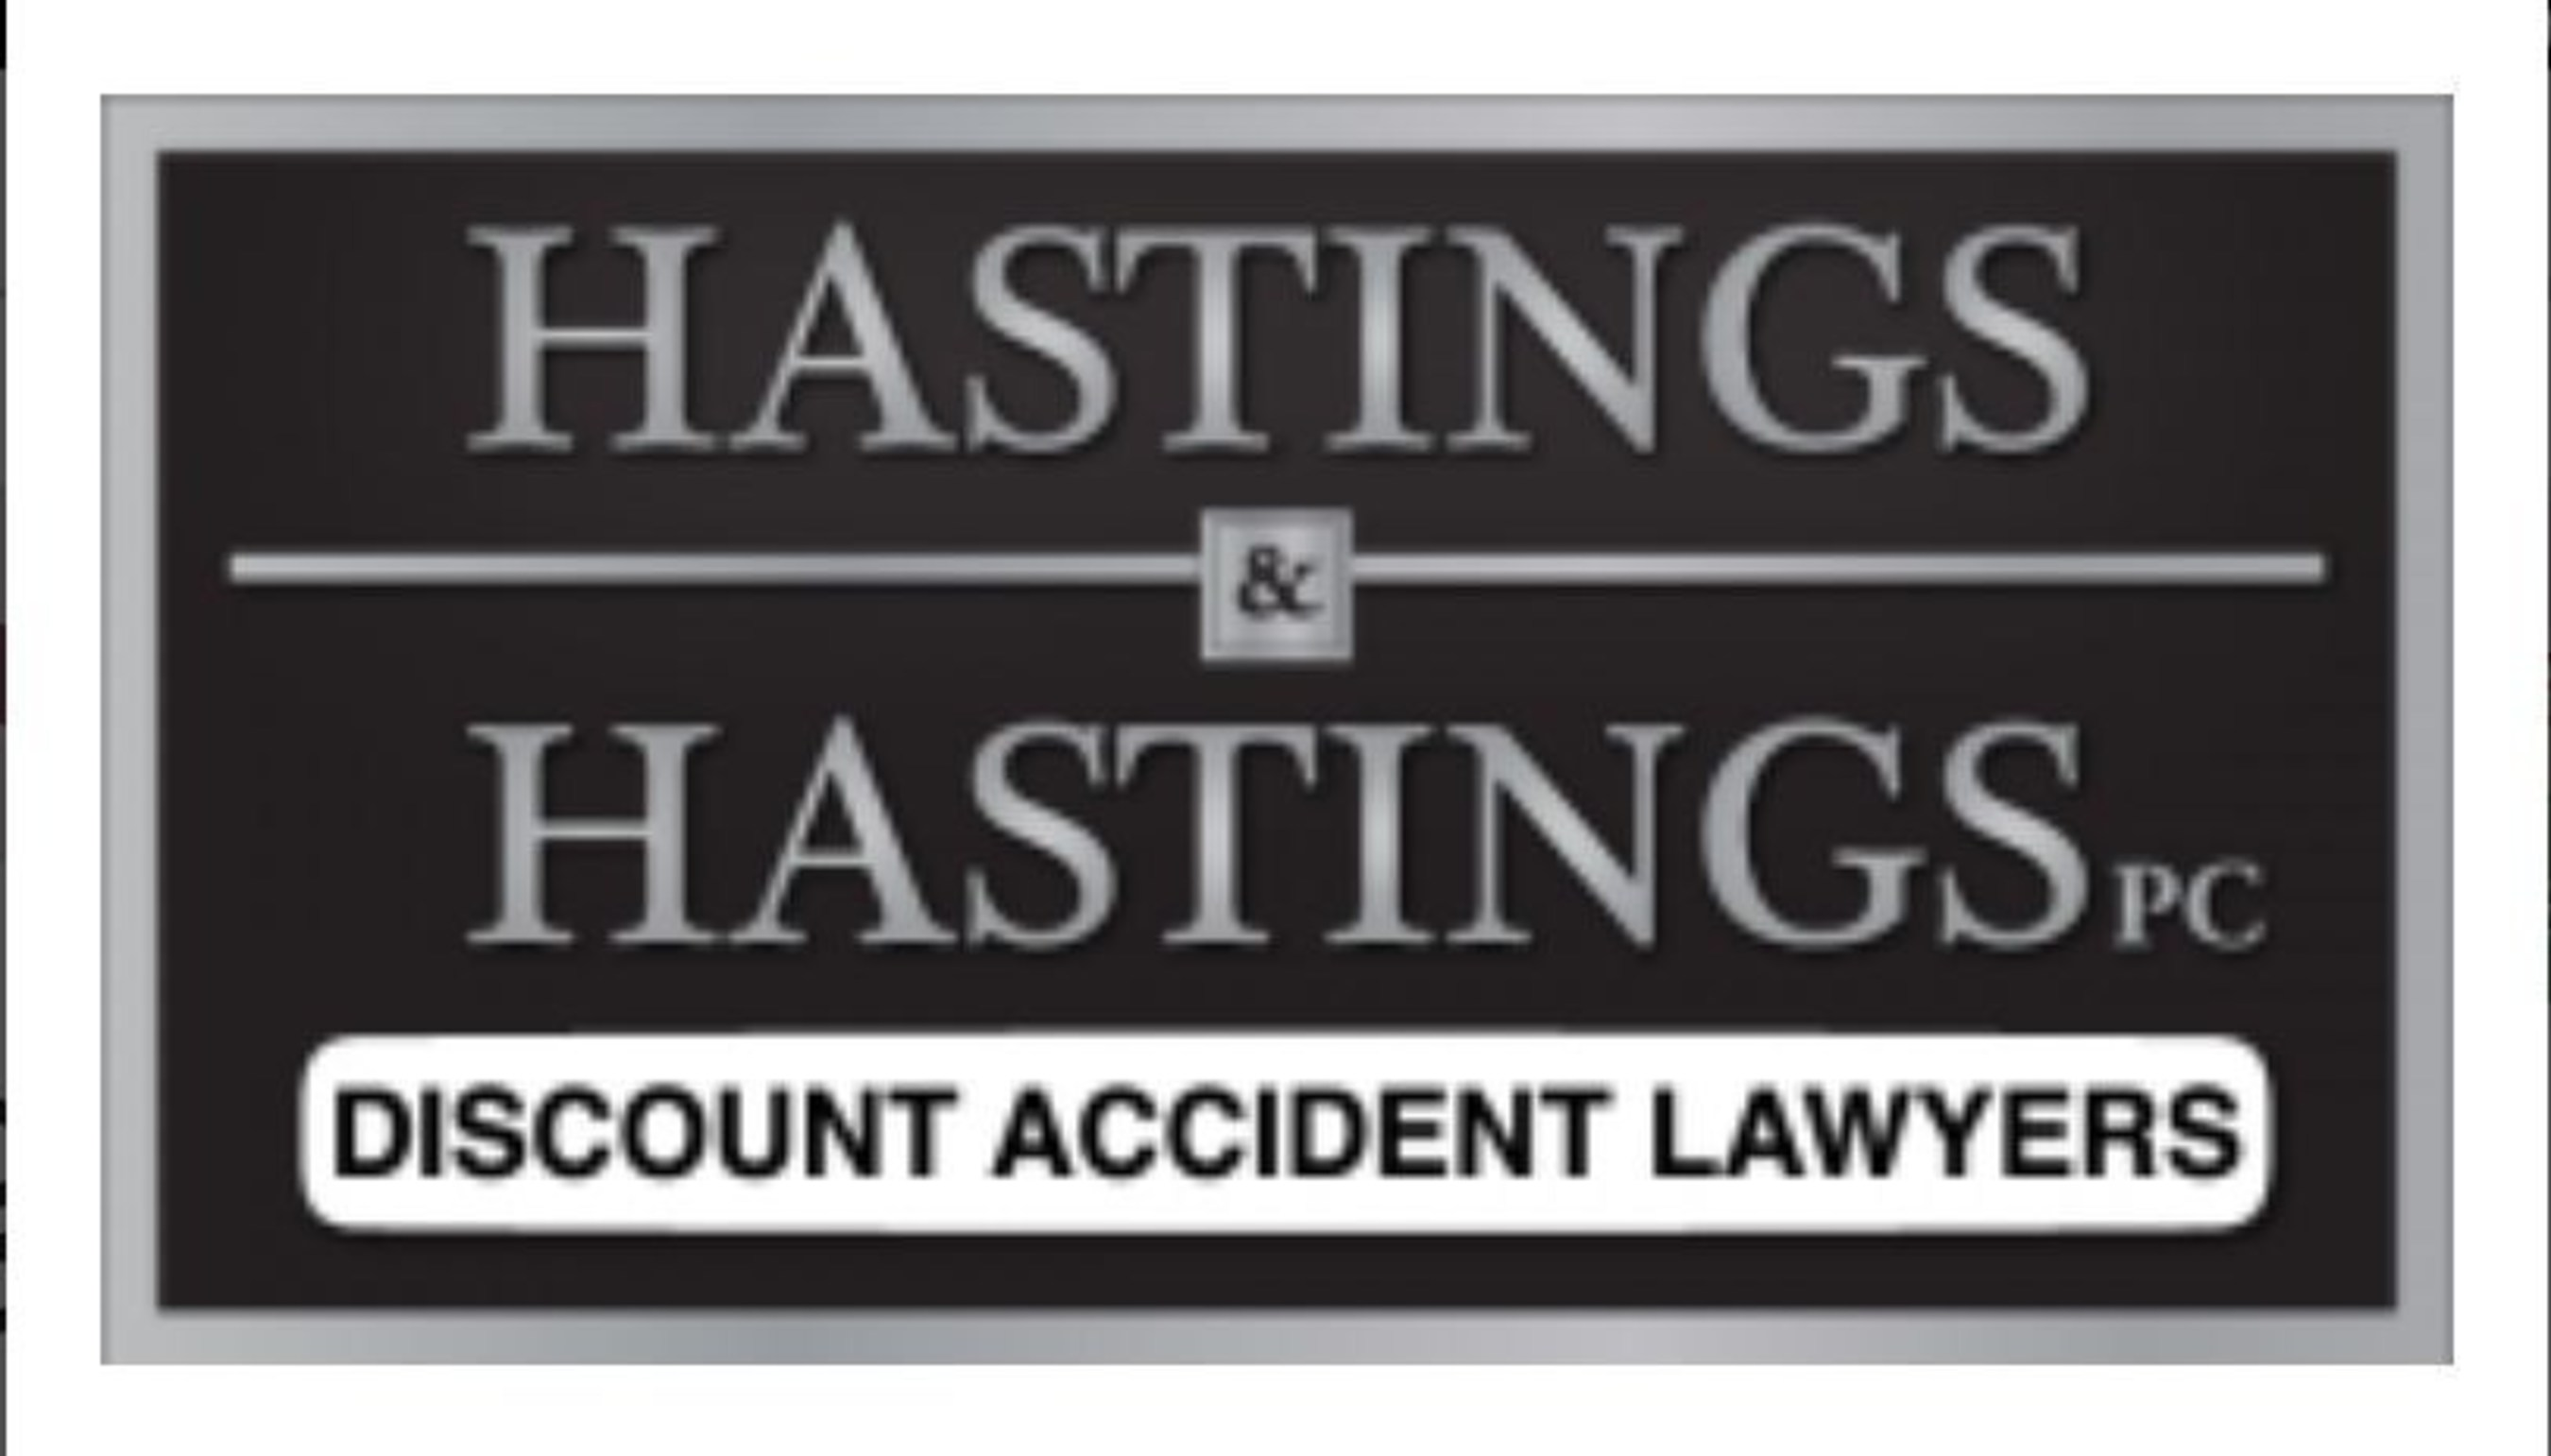 Hastings & Hastings Announces Incredible Client Savings